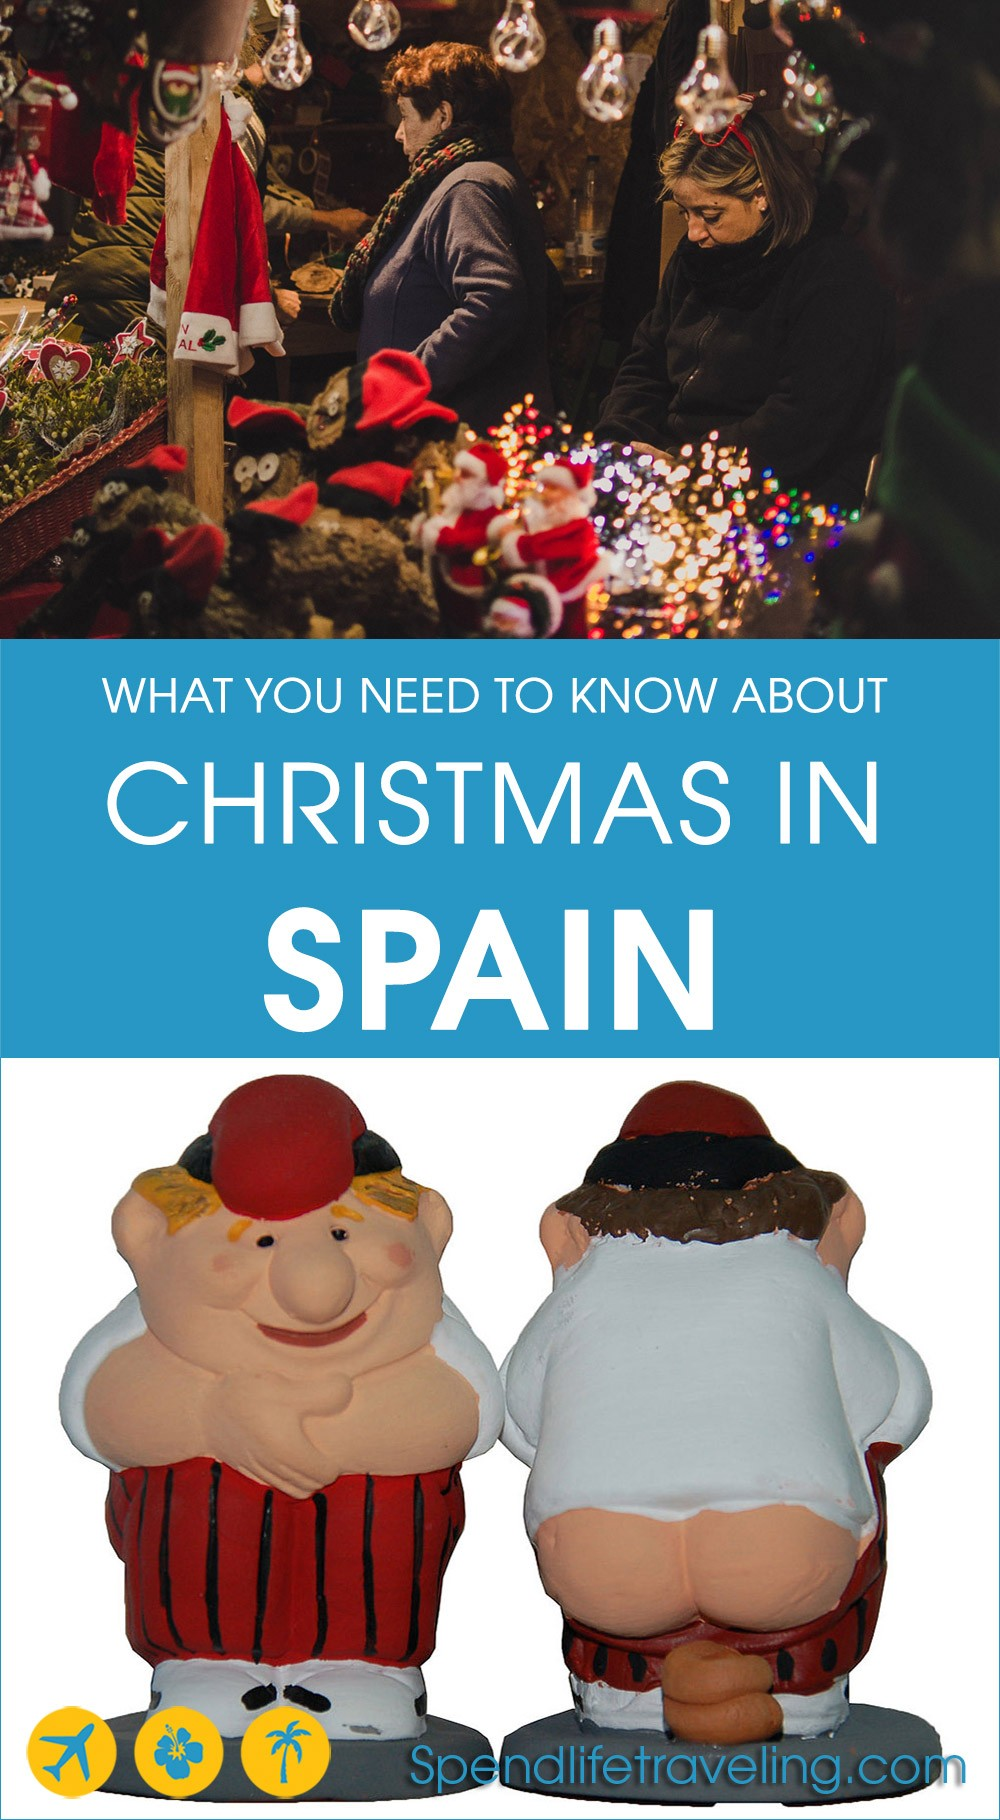 Christmas in Spain: traditions, the food, the dates and things to do if you decide to celebrate Christmas in Spain